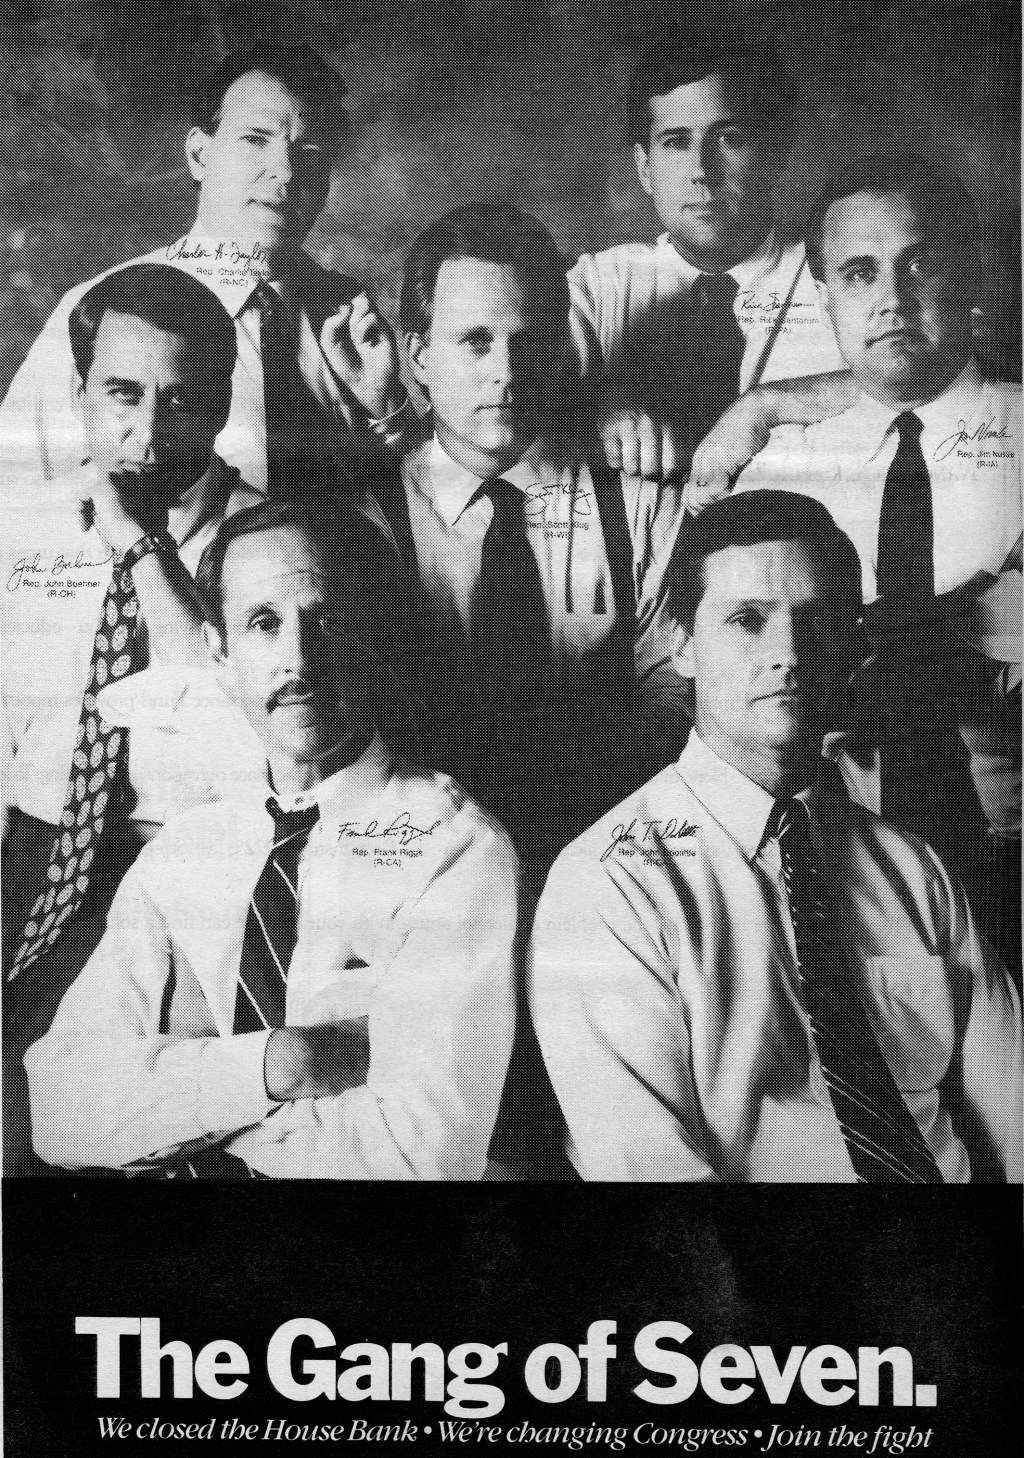 A soft-toned black and white poster of the freshman House Republicans who have come to be known as the